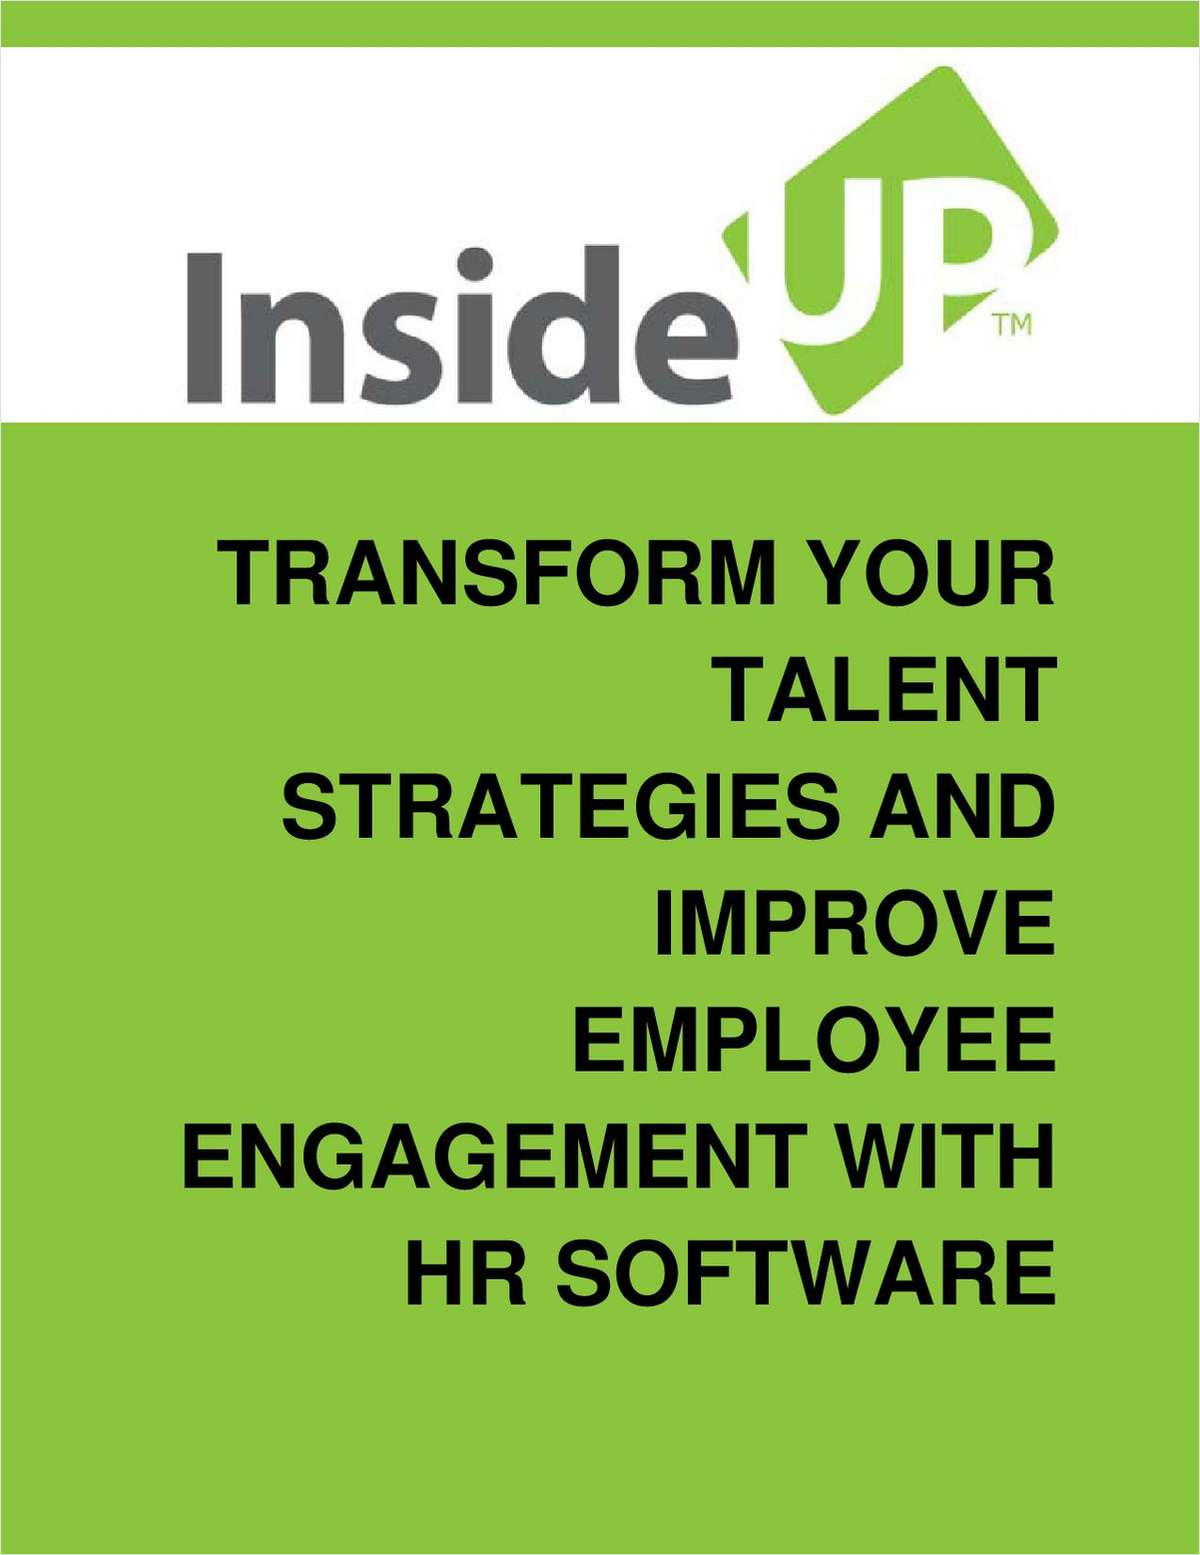 How HR Software Can Transform Your Talent Strategies and Improve Employee Engagement